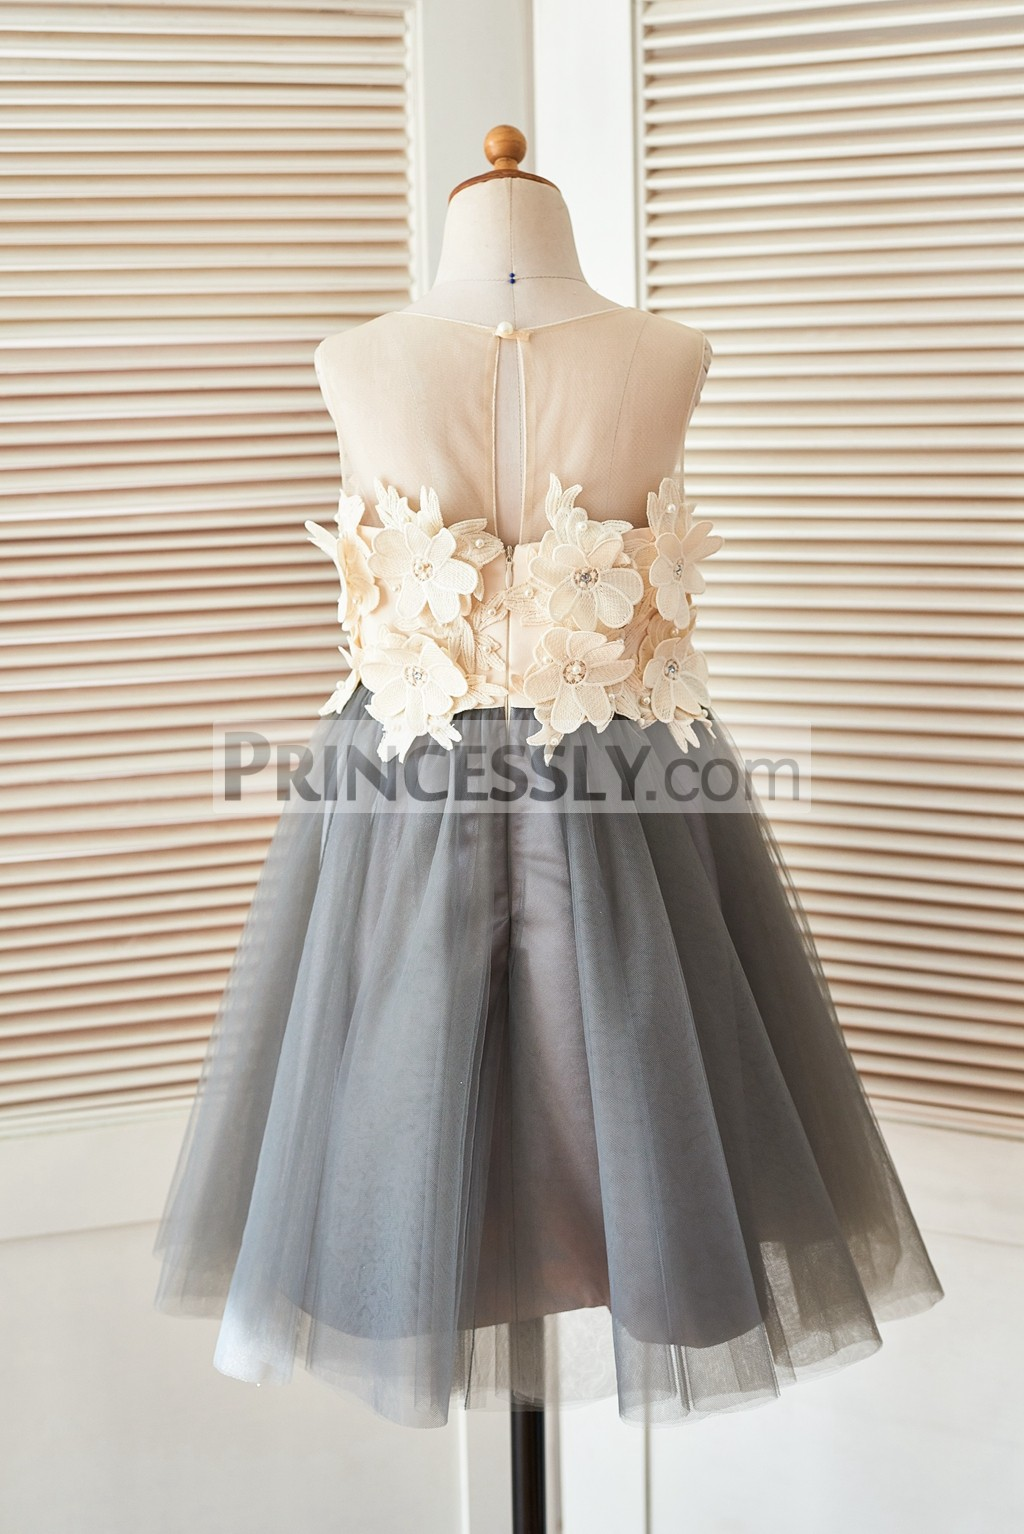 Sheer Illusion Neck Gray Tulle Flower Girl Dress with